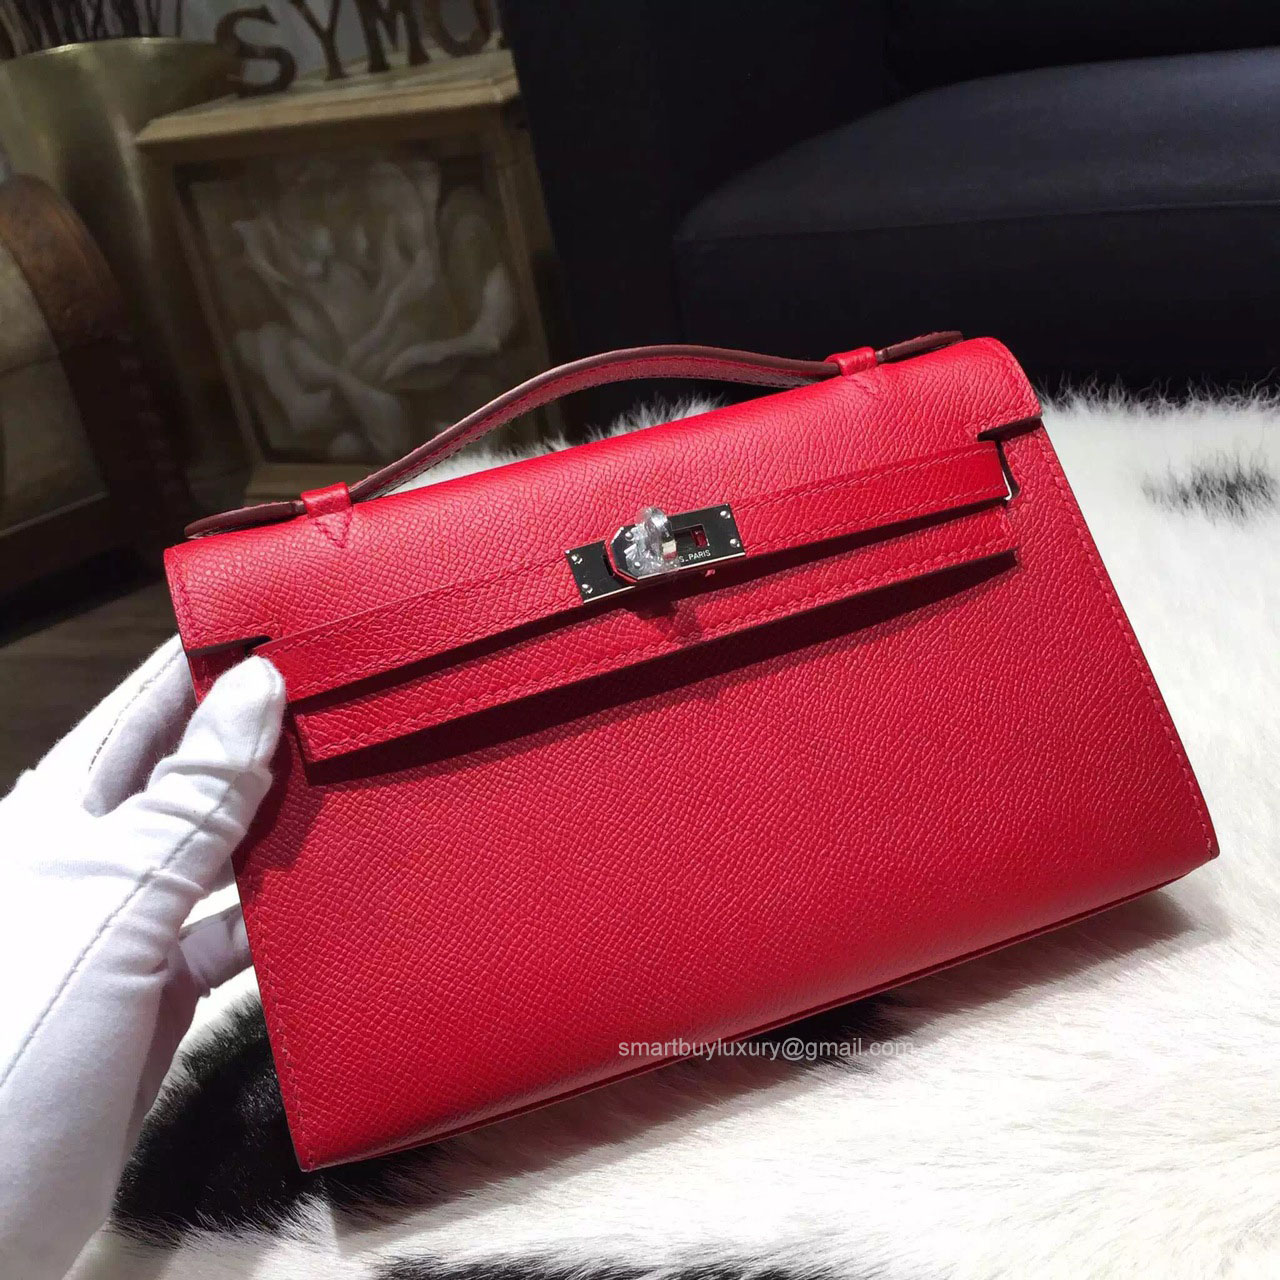 Hermes Kelly Pochette Price Cheap Hermes Bags Uk